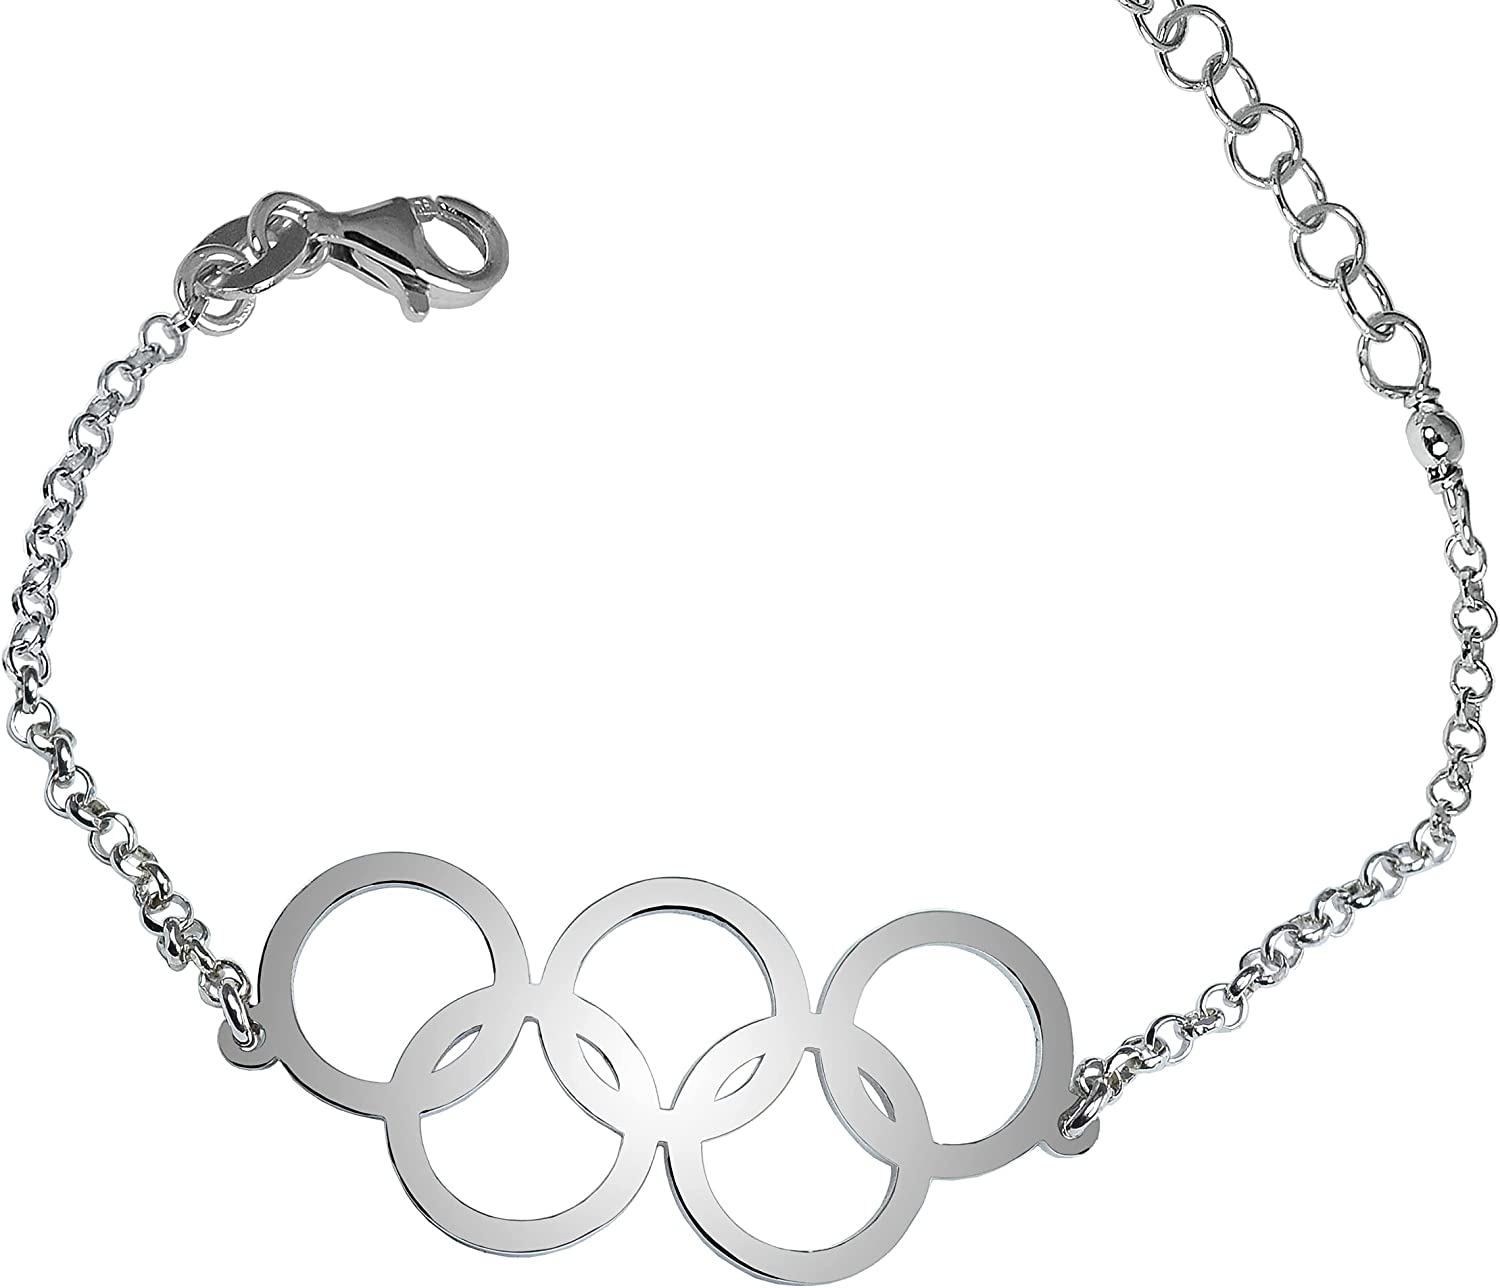 Olympic Rings - bracelet for solid women f Max 69% OFF Max 68% OFF silver 925